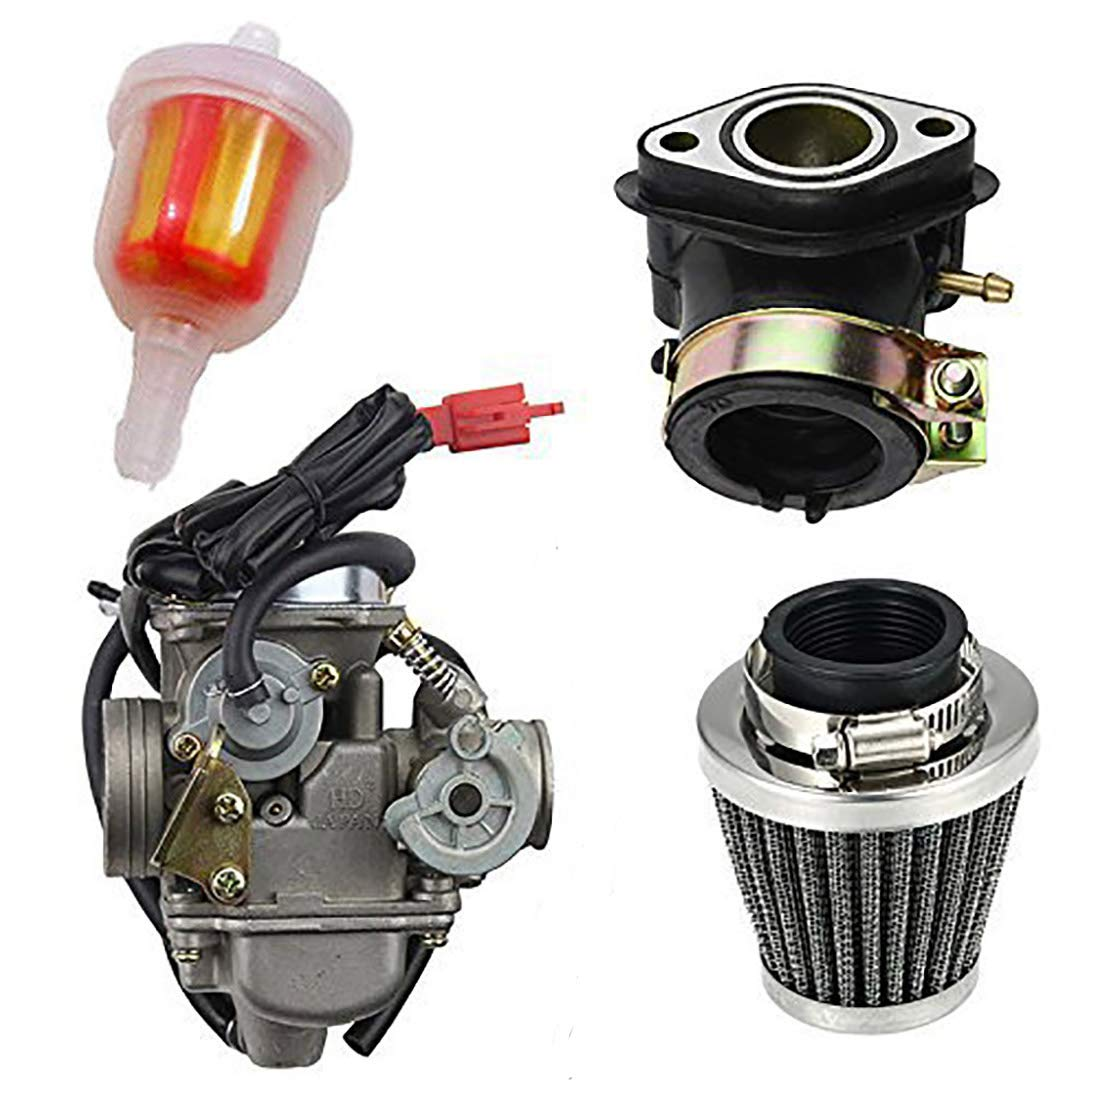 Chanoc PD24J Carburetor with Air Filter Intake Manifold for GY6 125cc150cc ATV Quad Go Kart Scooter Taotao Sunl Kazuma Roketa